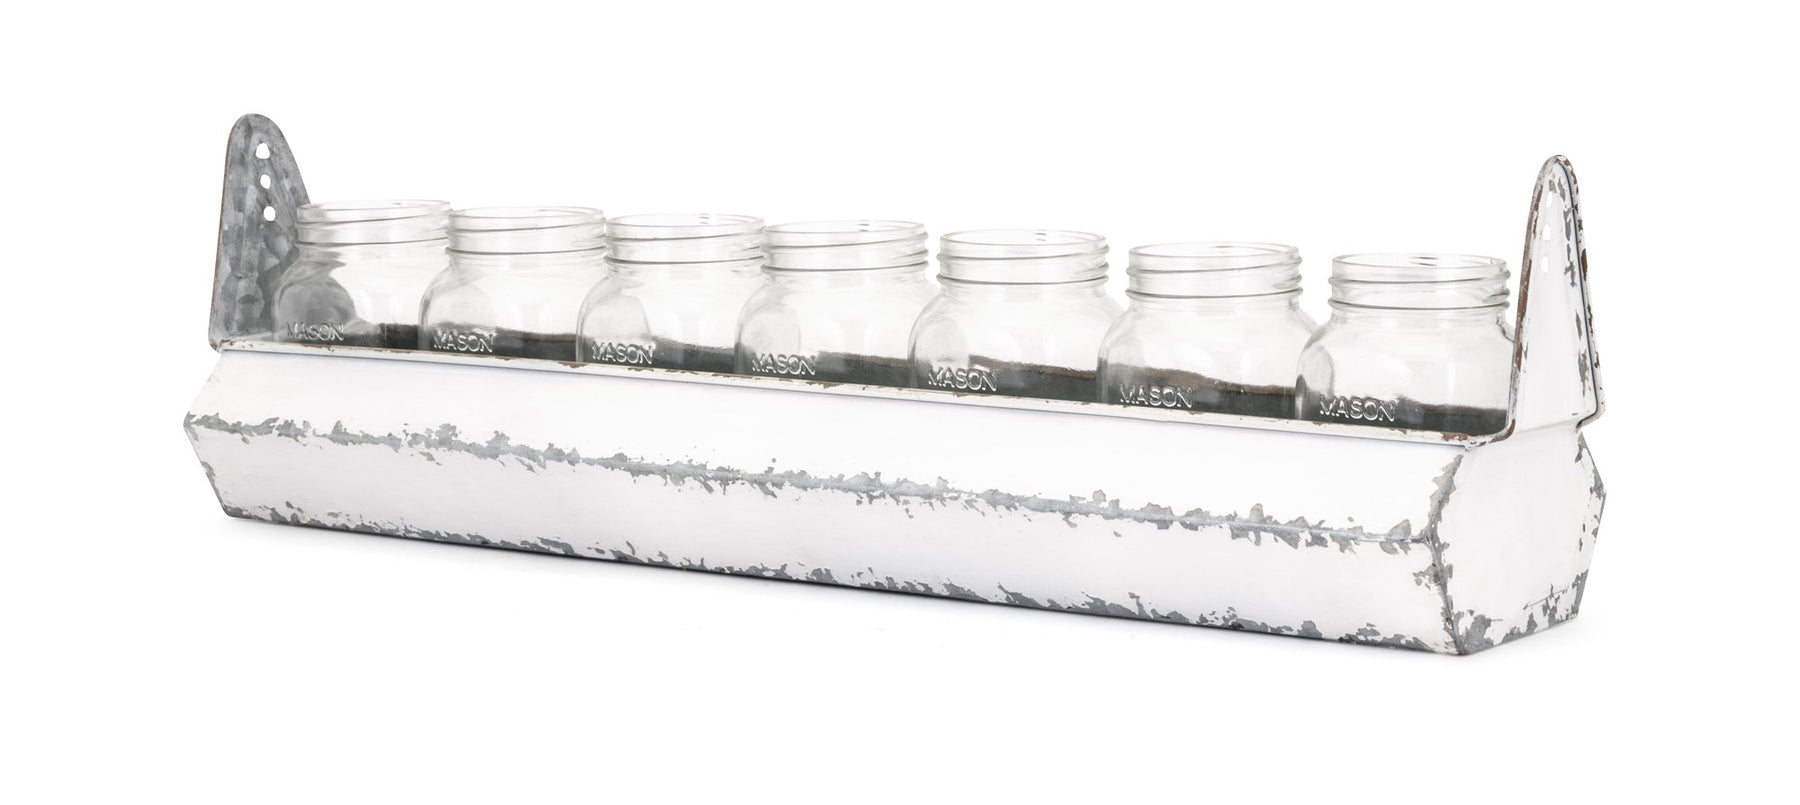 Orman-Tray-with-Jars